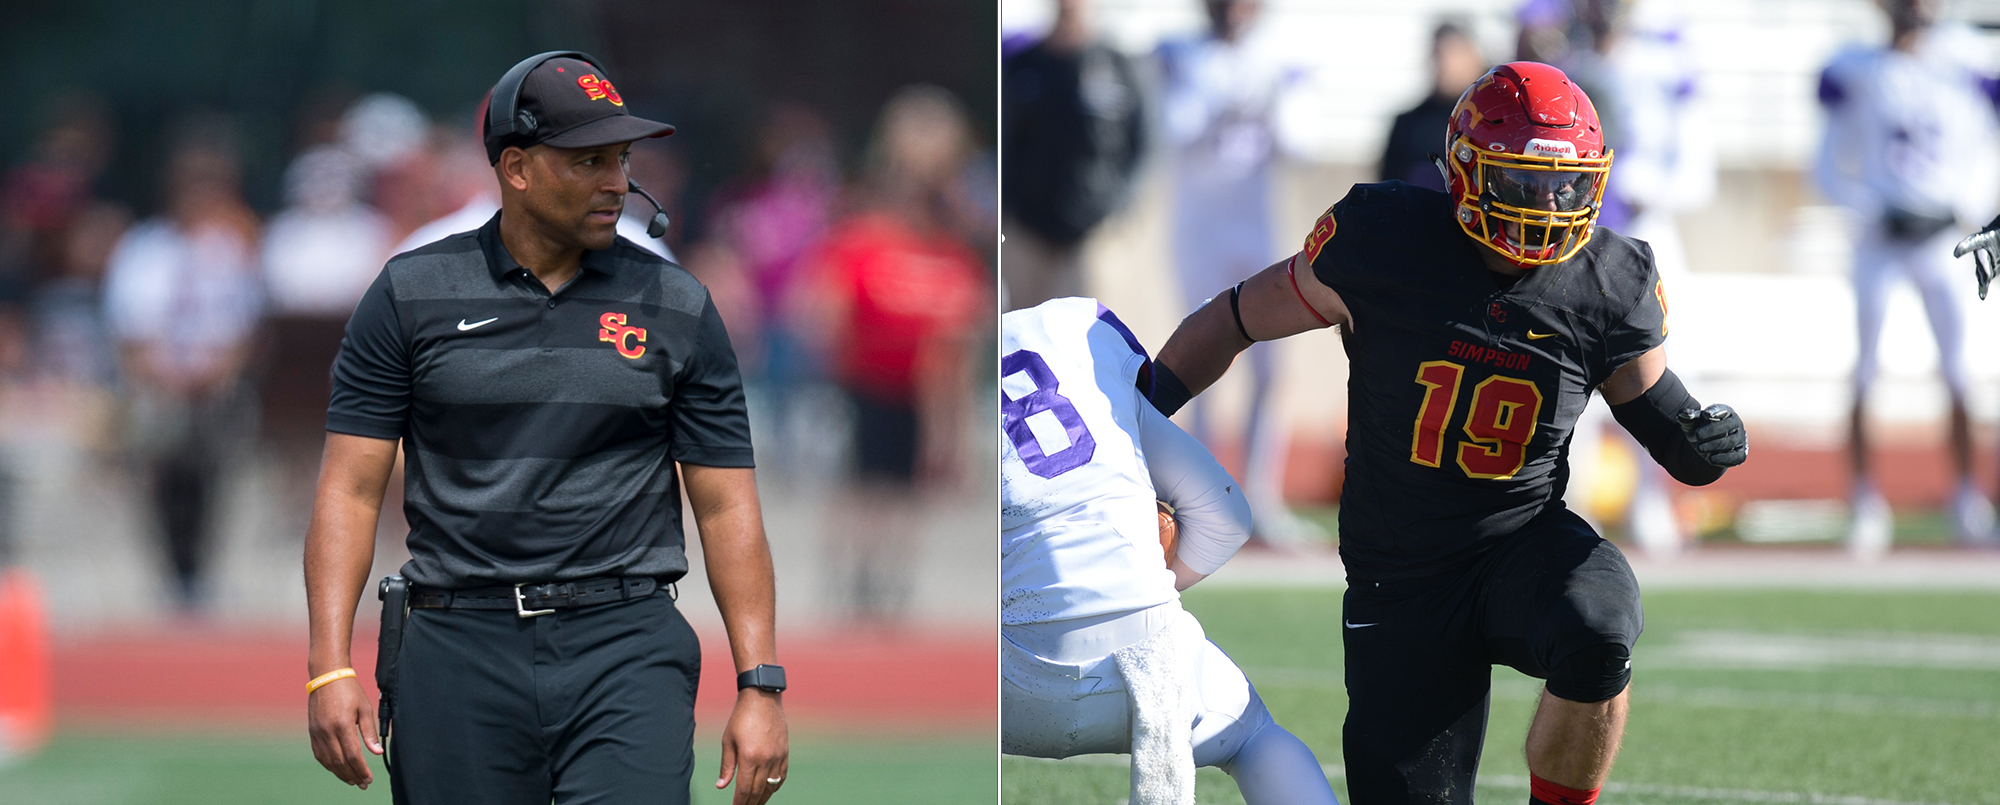 Head coach Matt Jeter (left) earned American Rivers Coach of the Year honors and linebacker Michael Connor was named Defensive Player of the Year for the 2018 season.